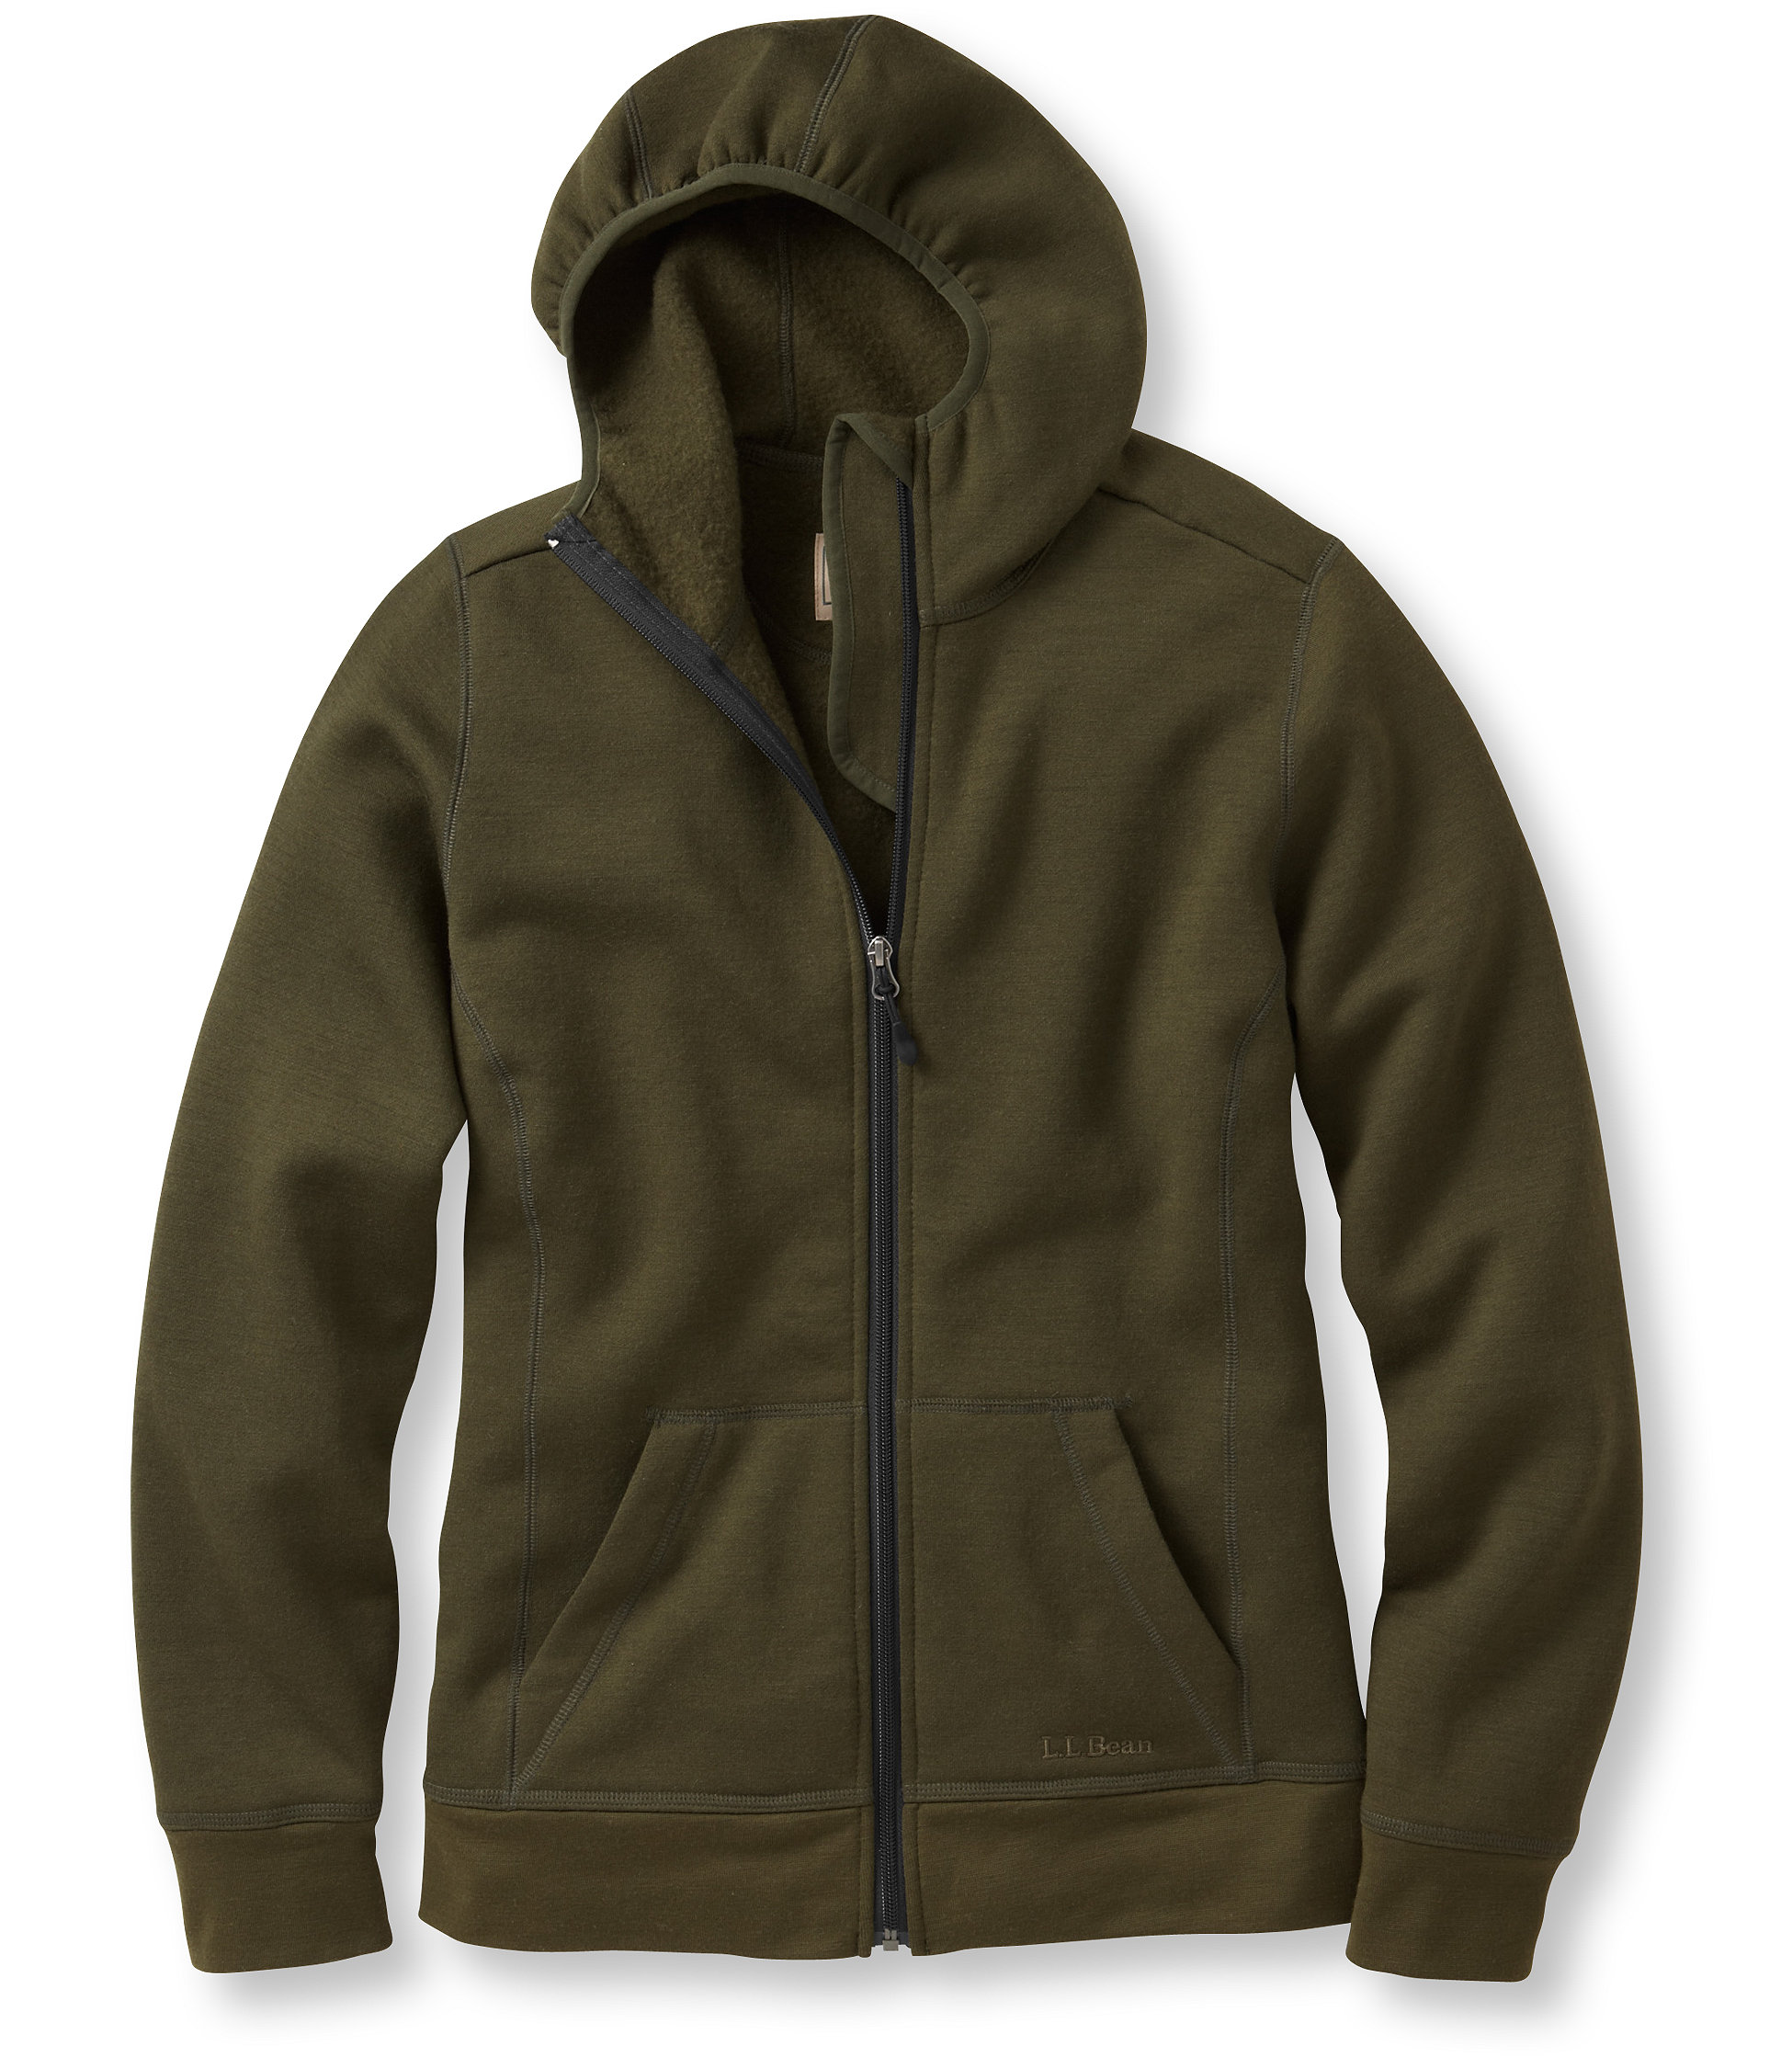 L.L.Bean Merino Wool Hooded Sweatshirt